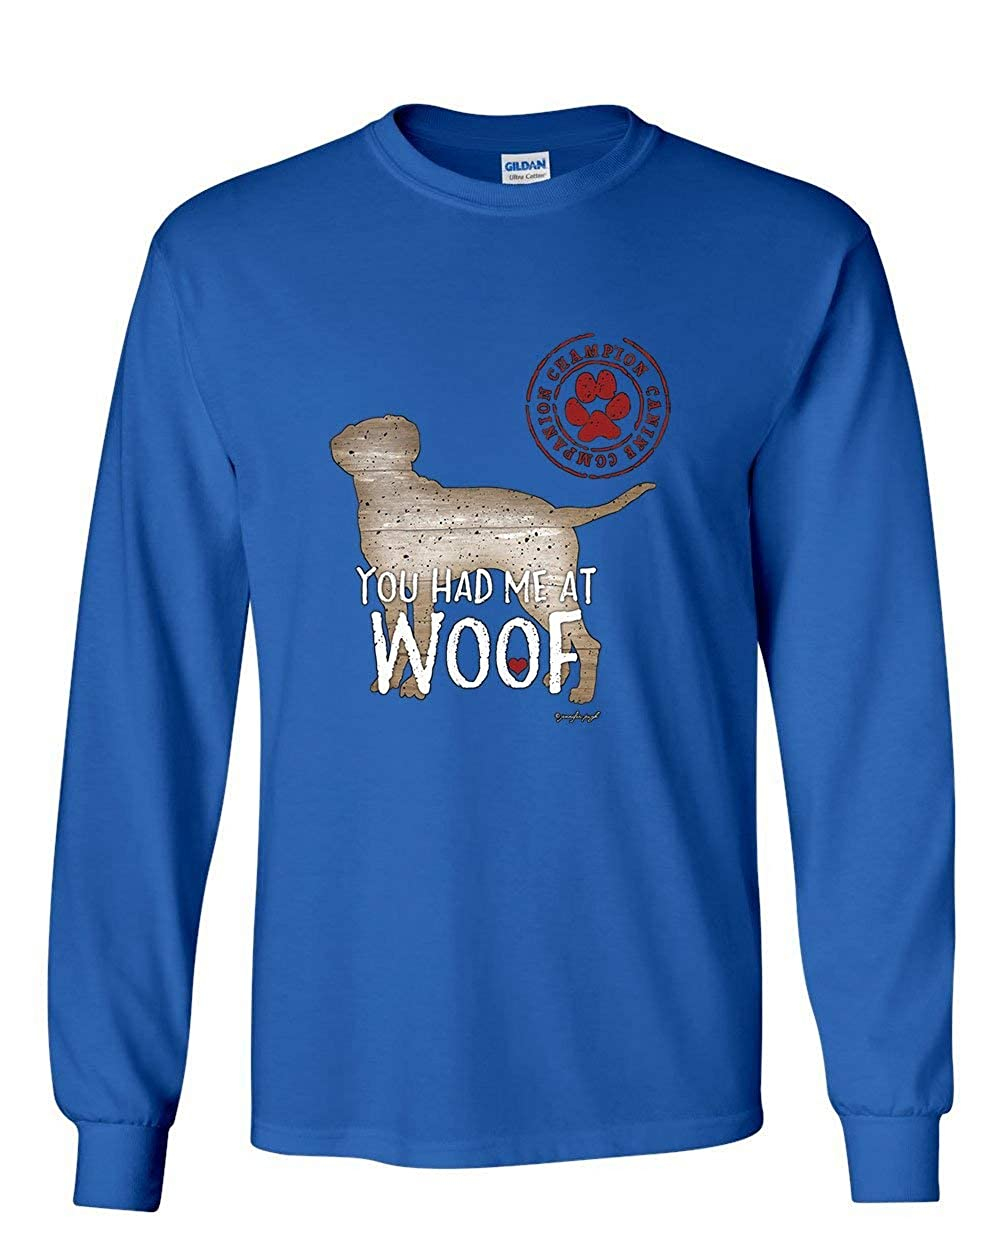 You Had Me at Woof Long Sleeve T-Shirt Pet Friend Dogs Doggie Puppy Paw Bark Tee